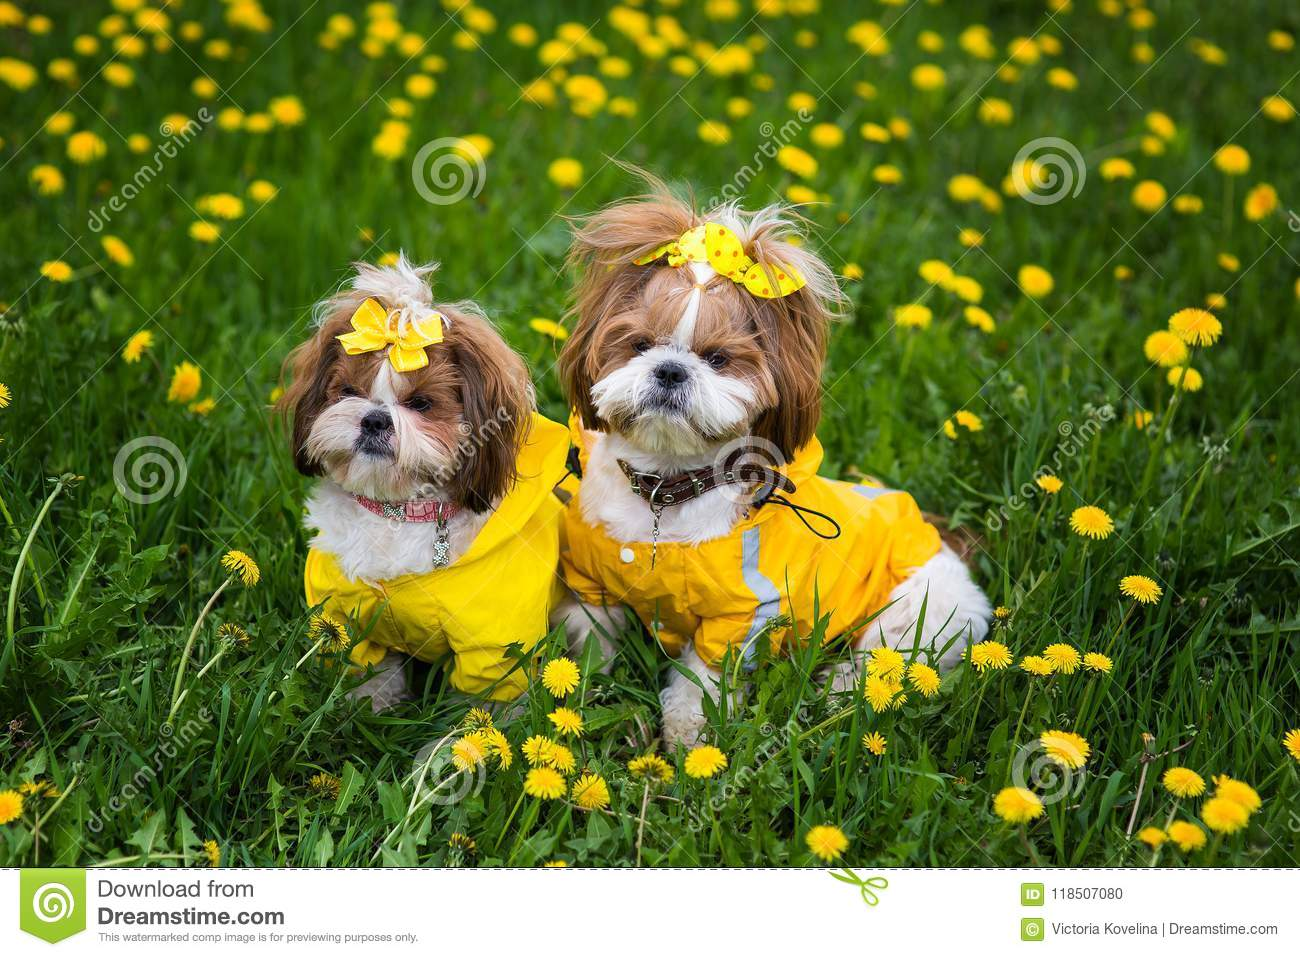 Cute Little Dog Sitting Among Yellow Flowers In Yellow Overalls With